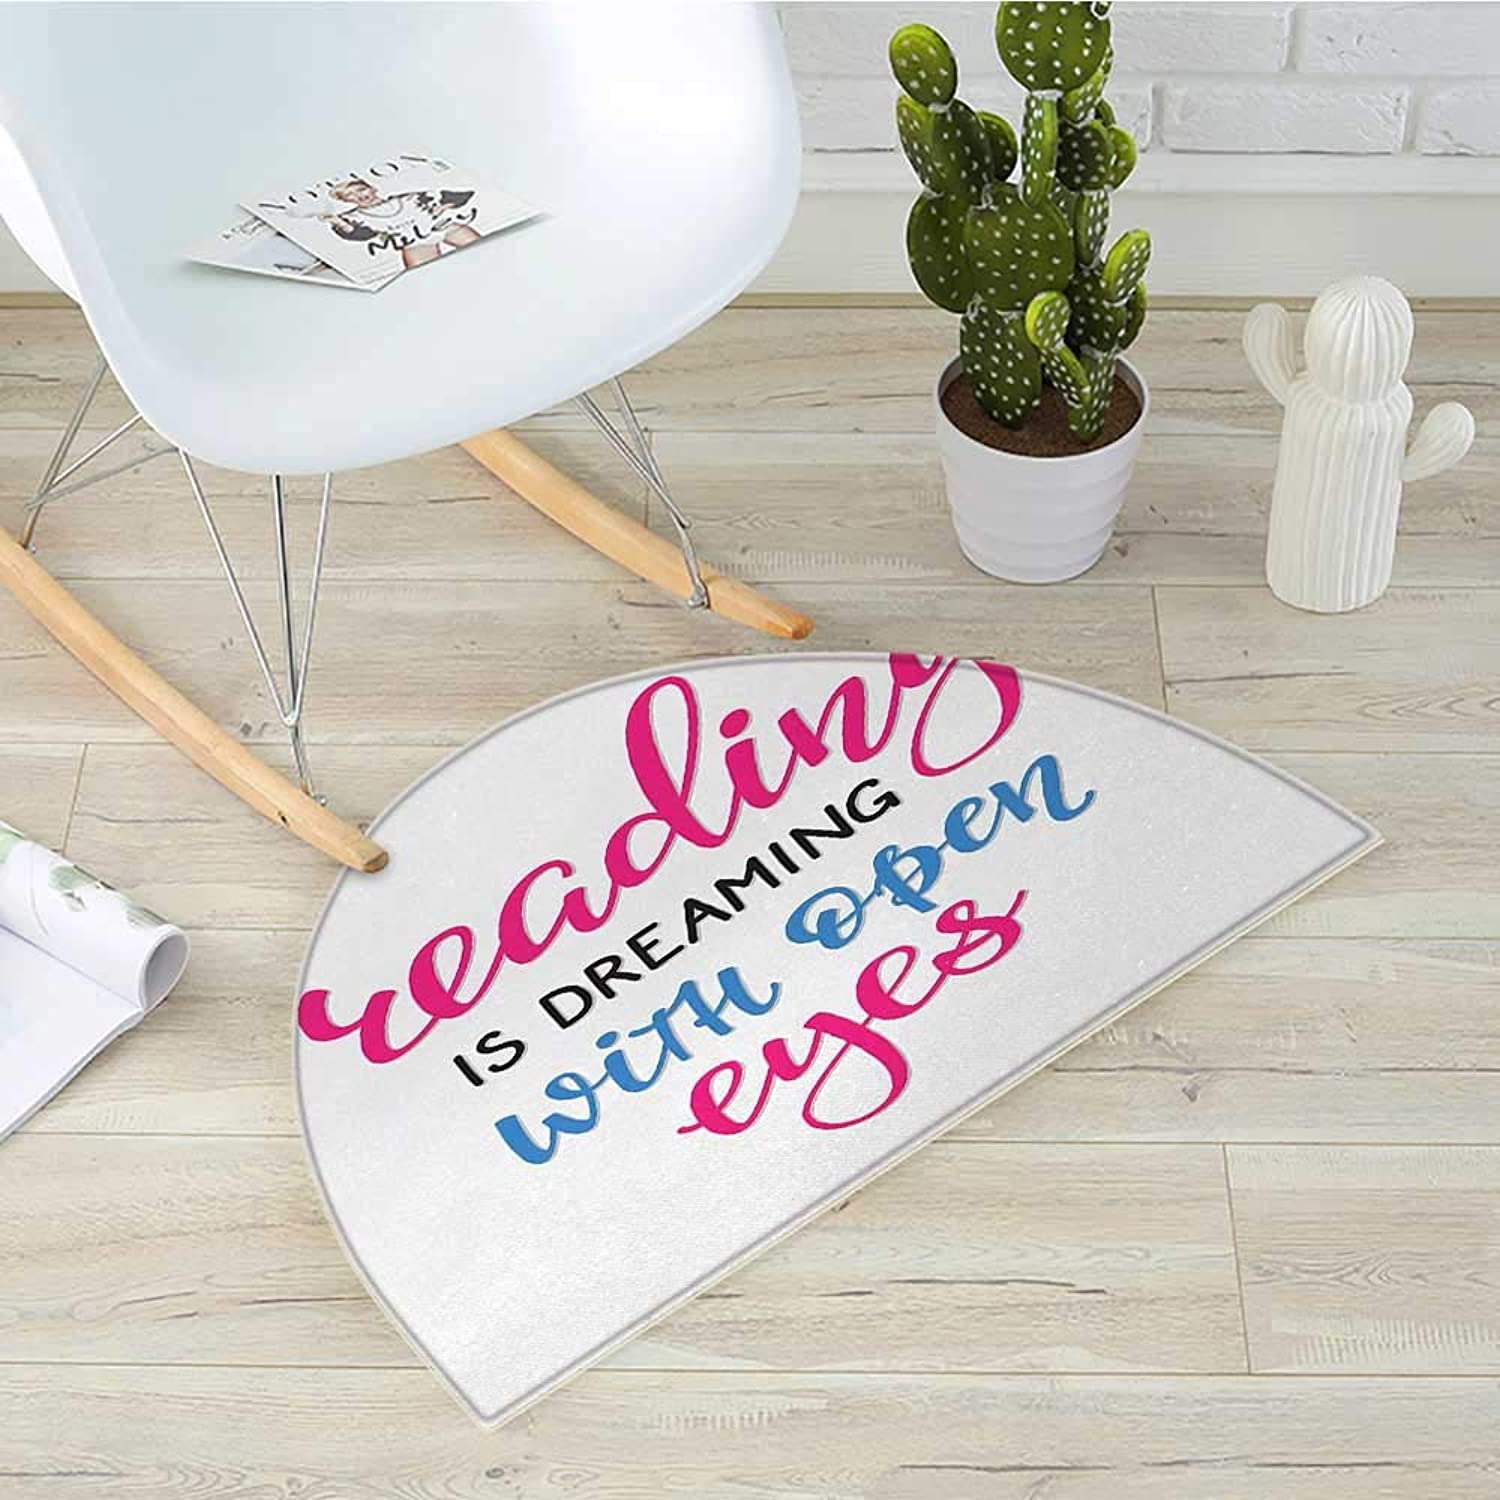 Book Half Round Door mats Reading is Dreaming with Open Eyes Quotation Print on White Background Bathroom Mat H 39.3  xD 59  Azure bluee Magenta Black